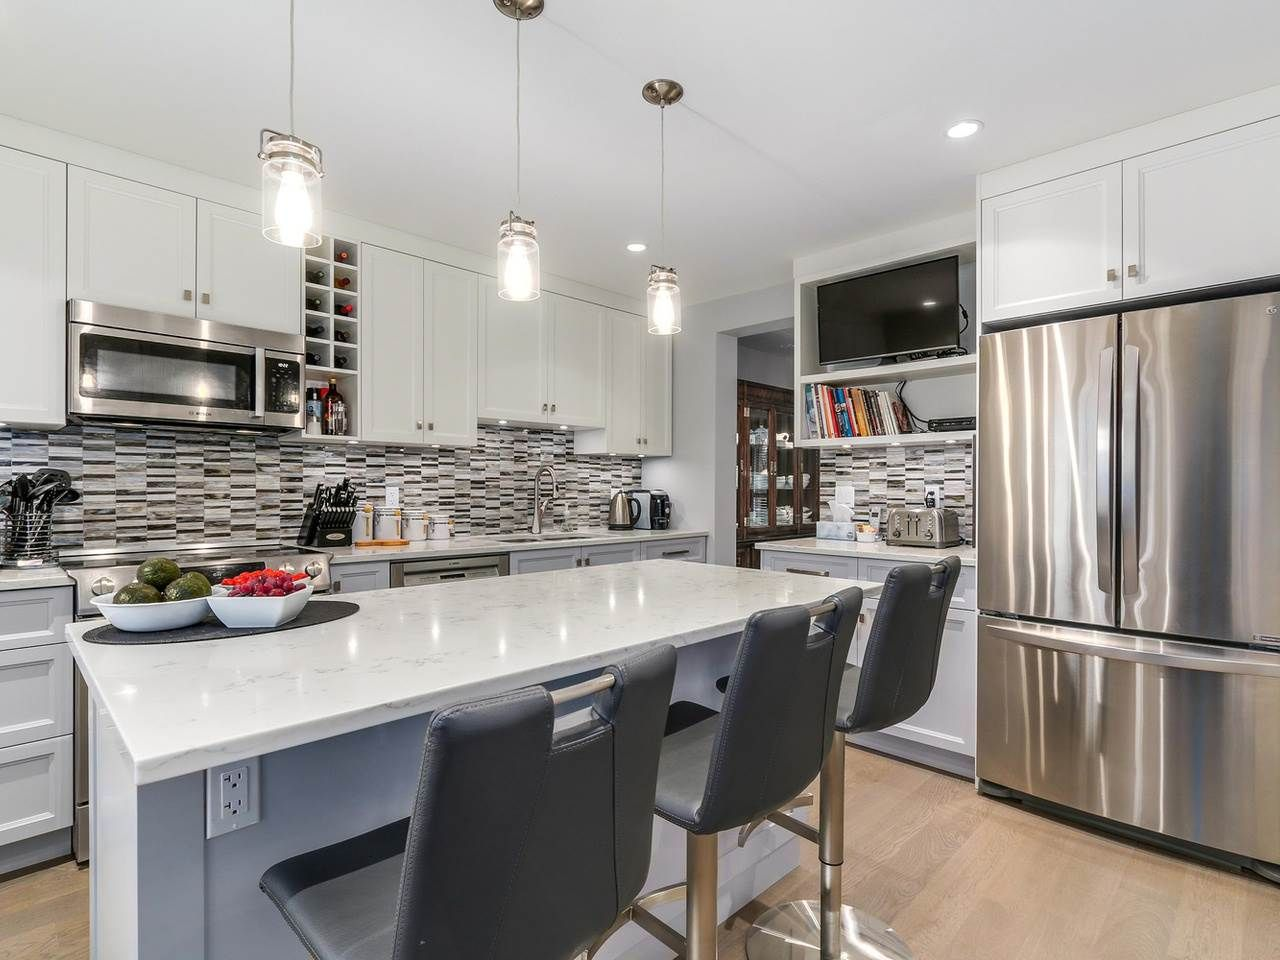 """Main Photo: 71 8111 SAUNDERS Road in Richmond: Saunders Townhouse for sale in """"OSTERLEY PARK"""" : MLS®# R2135829"""